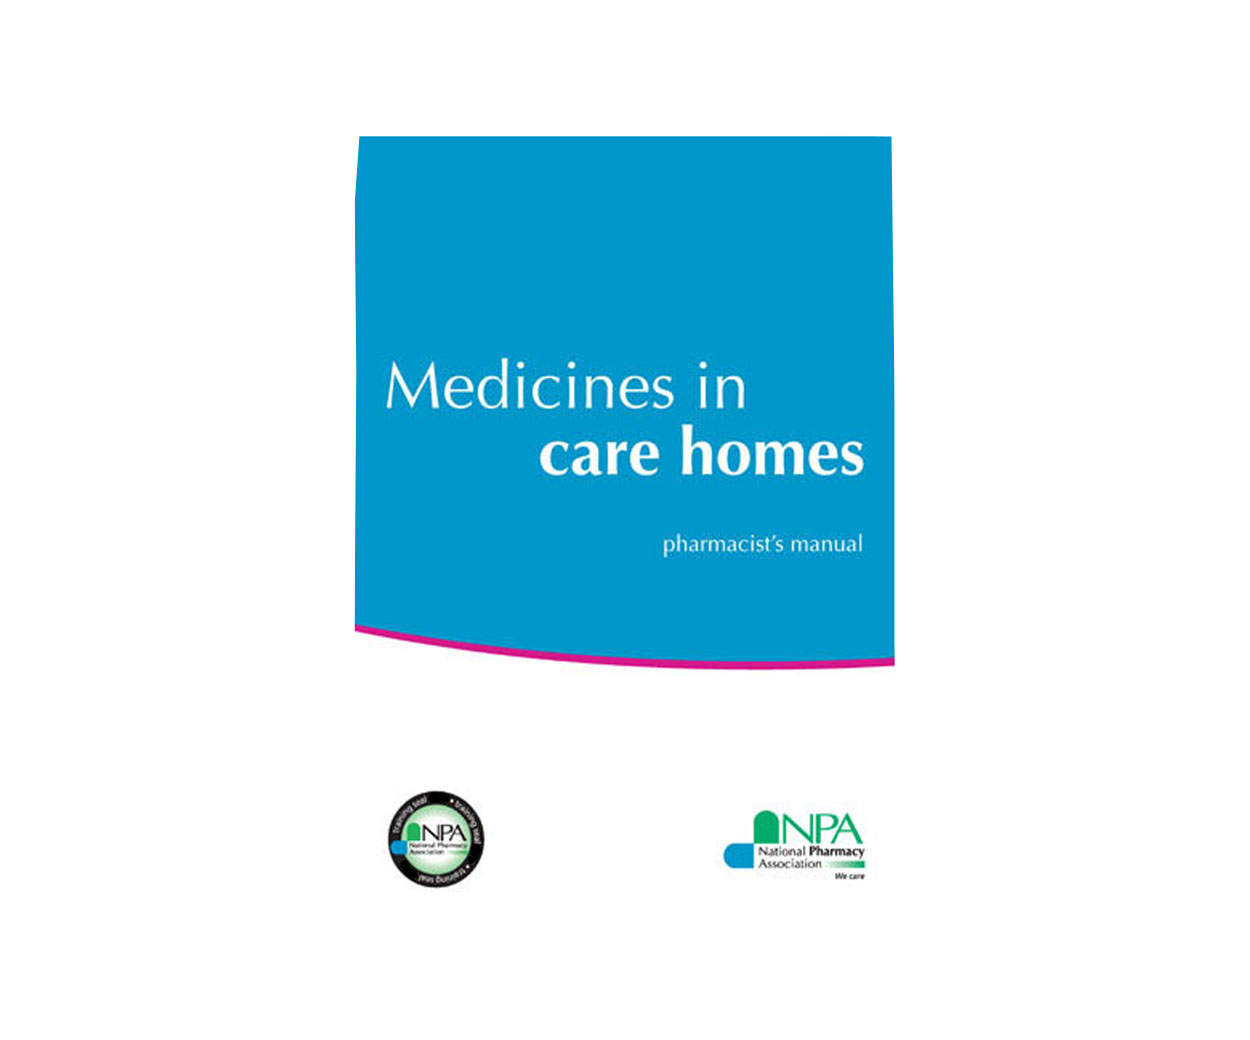 Medicines in Care Homes Training Course for Pharmacists